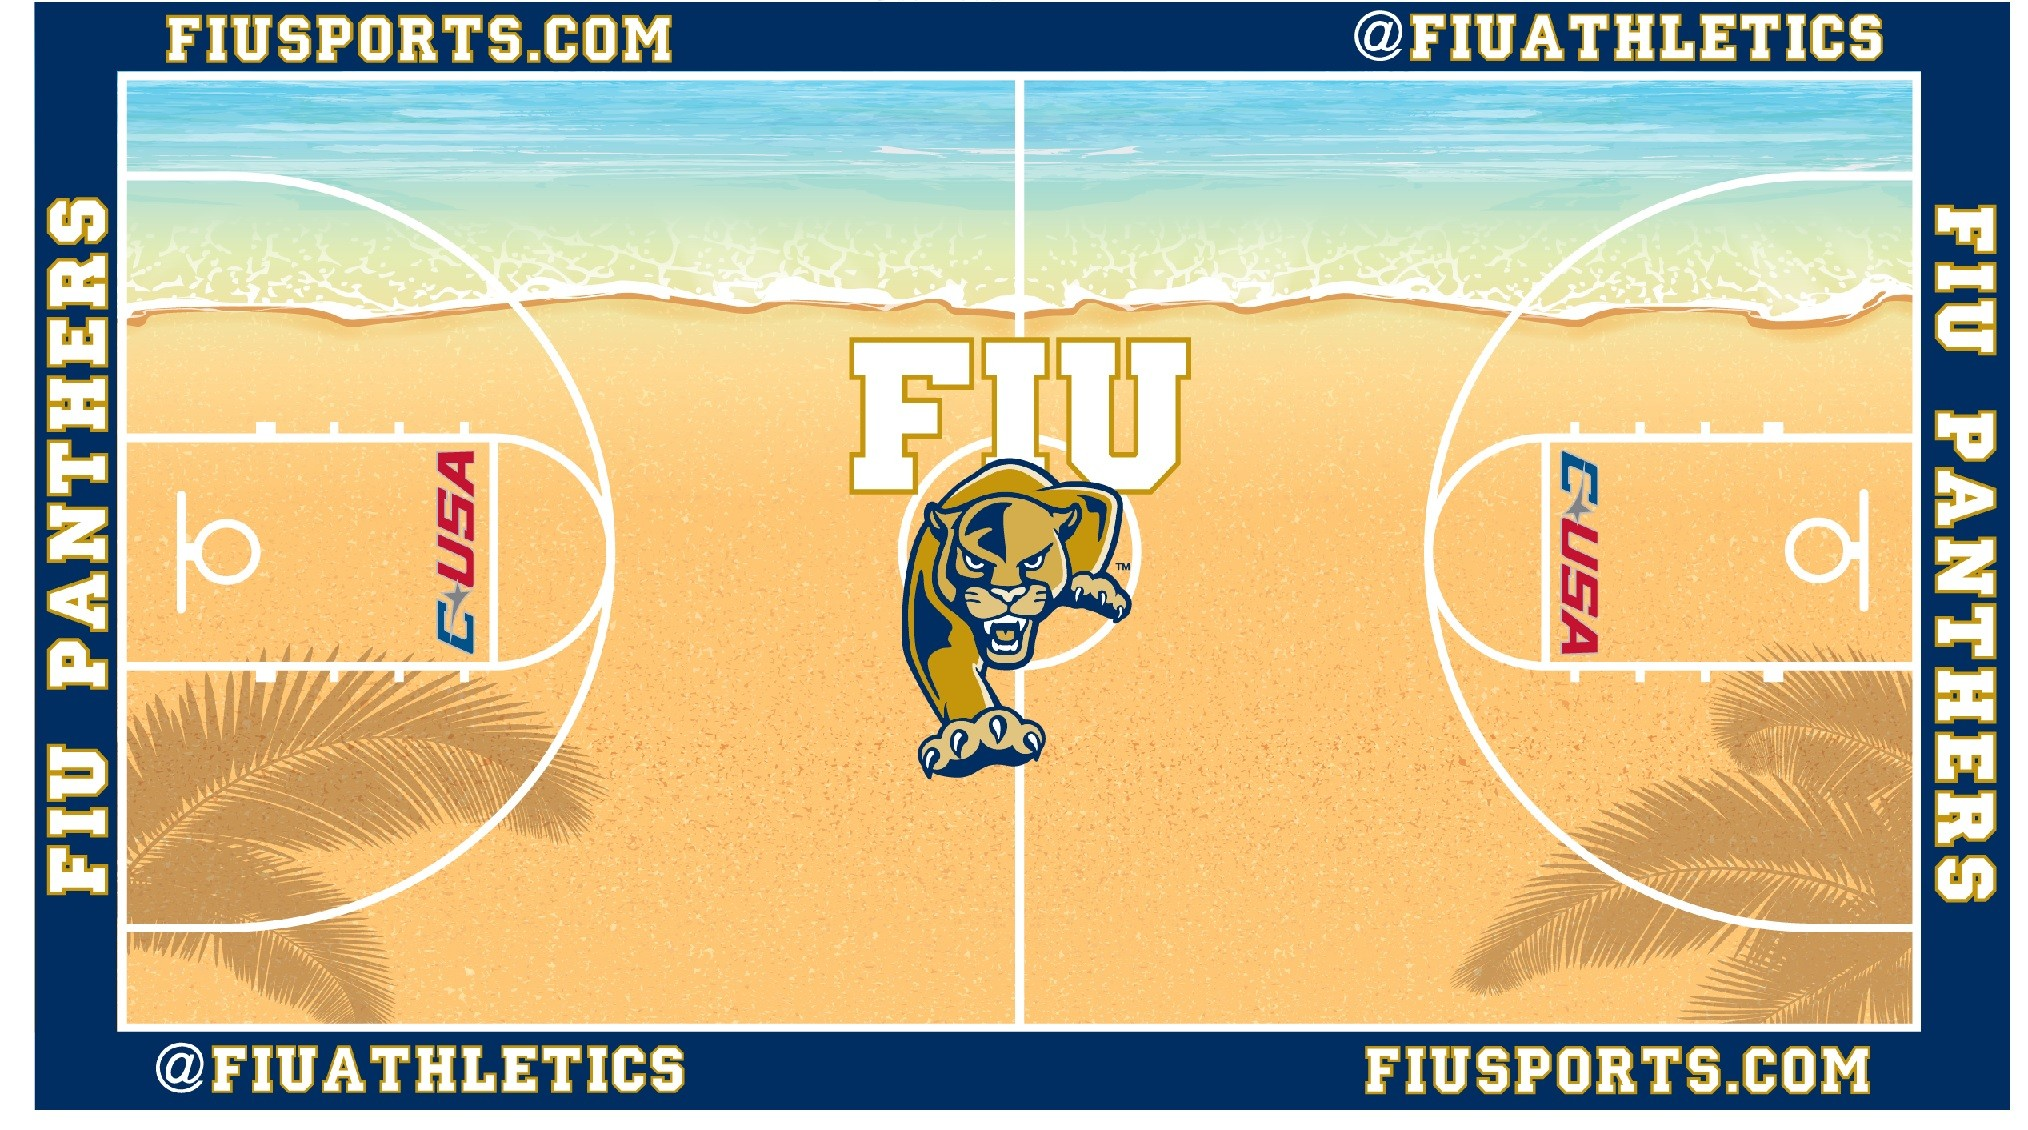 FIU's Beach Basketball Court Will Be College Hoops' Must-Sea (PHOTO) | HuffPost